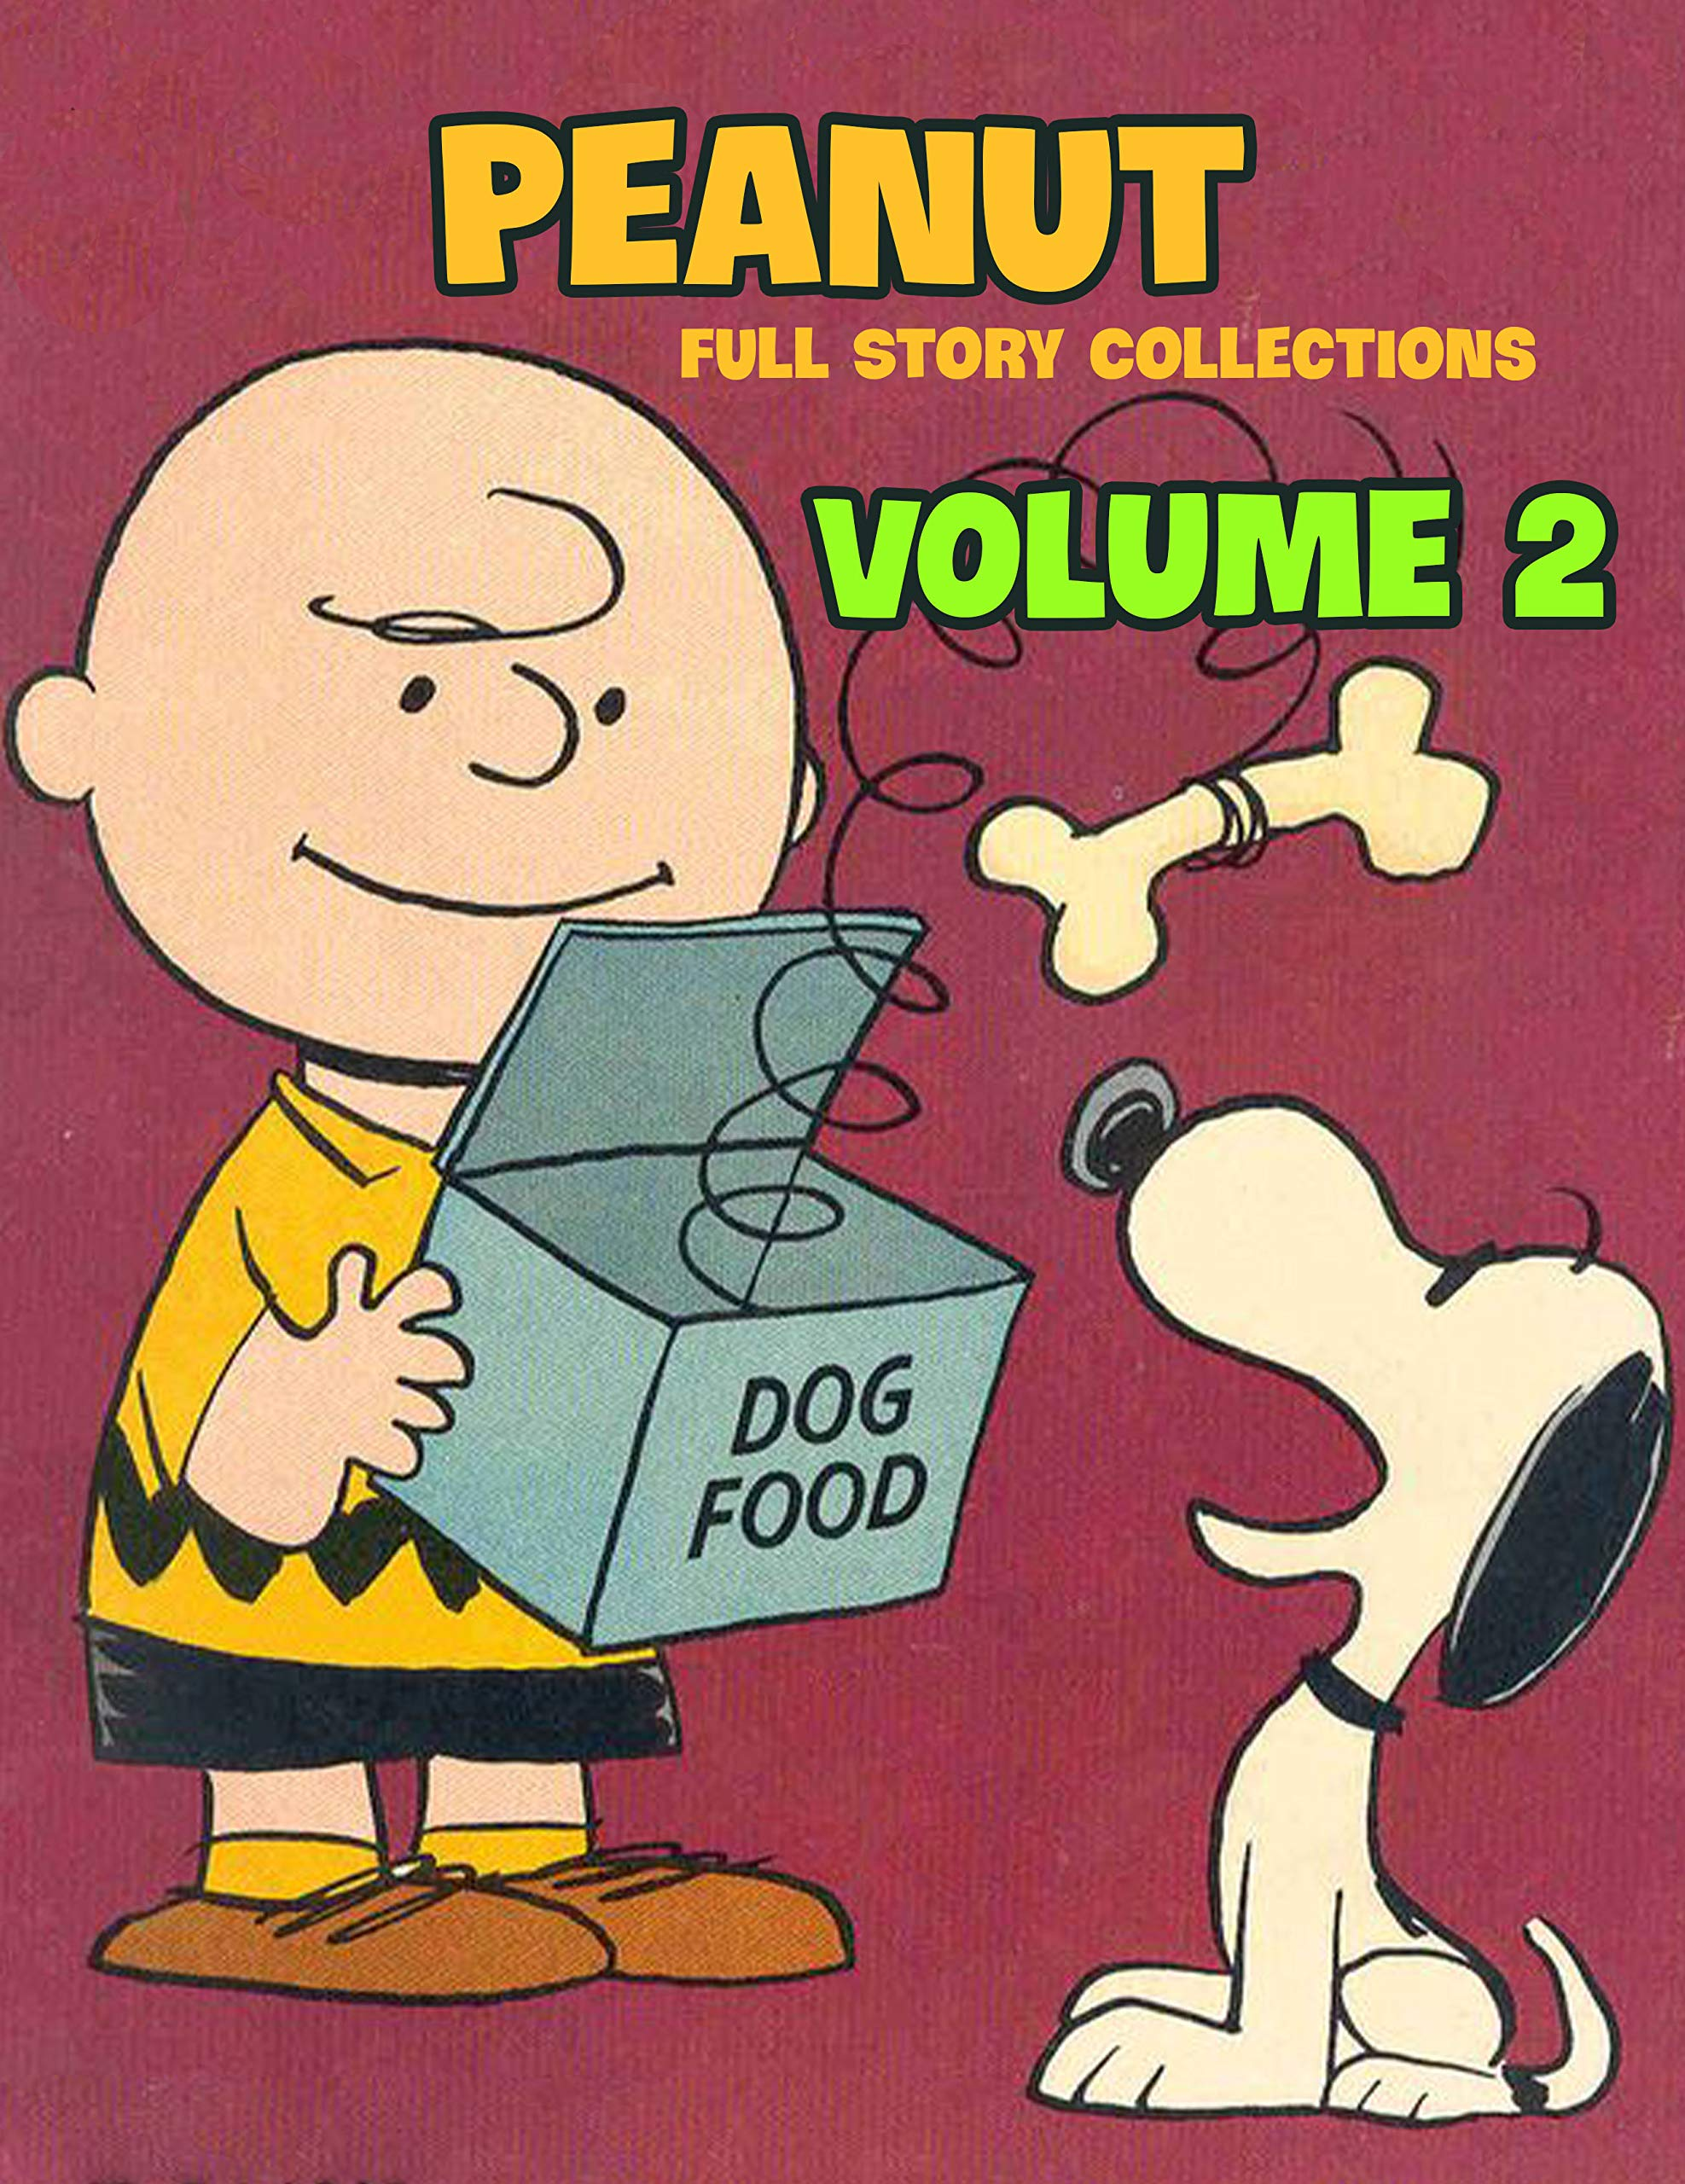 Full Story Peanut Collection Vol 2: Full Book of Peanuts Limited Edition Vol 2